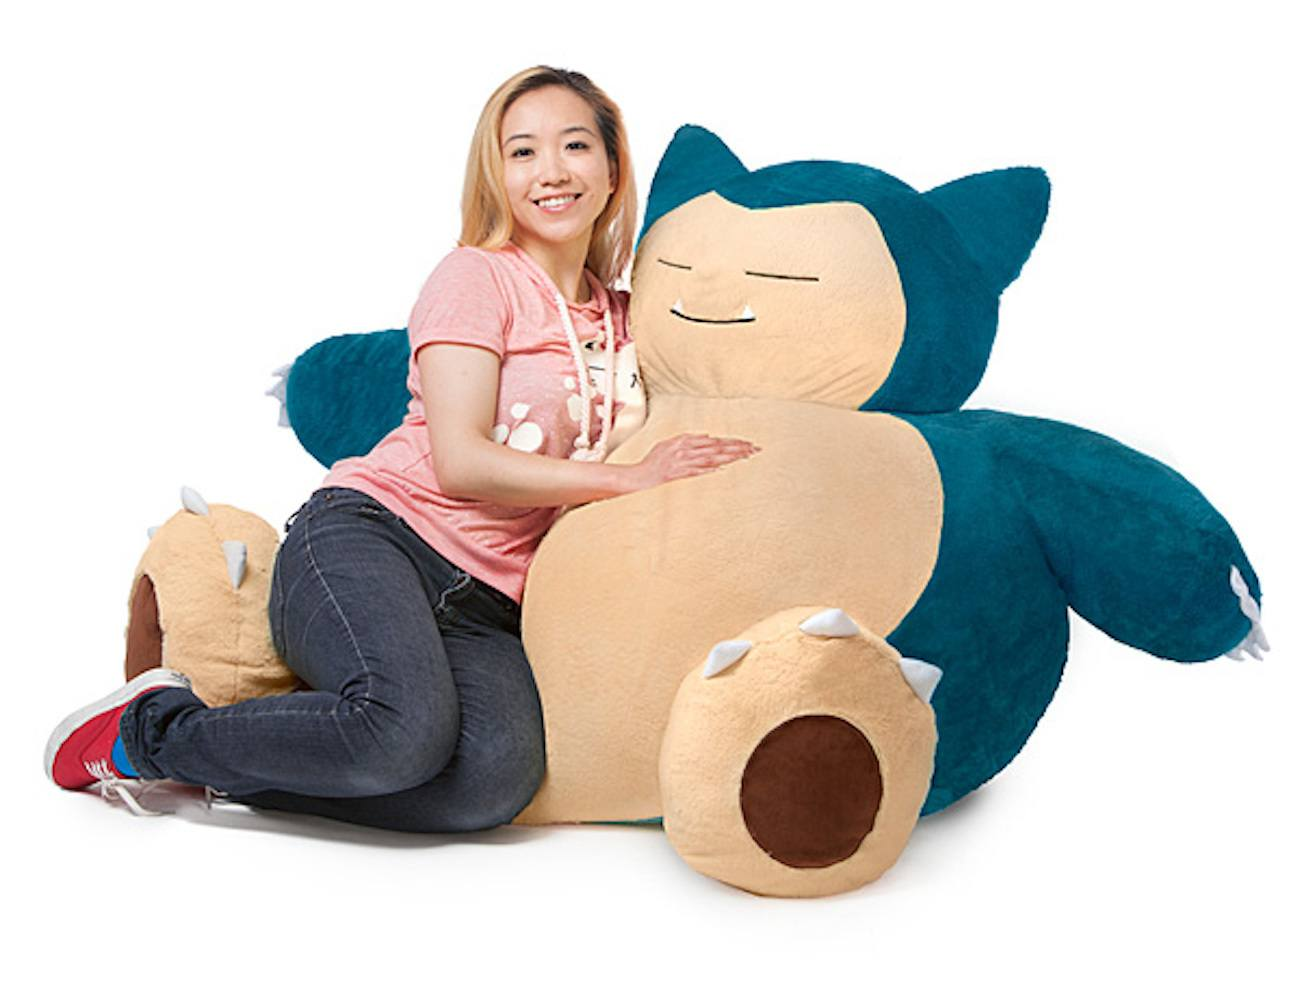 Pokémon Snorlax Bean Bag Chair